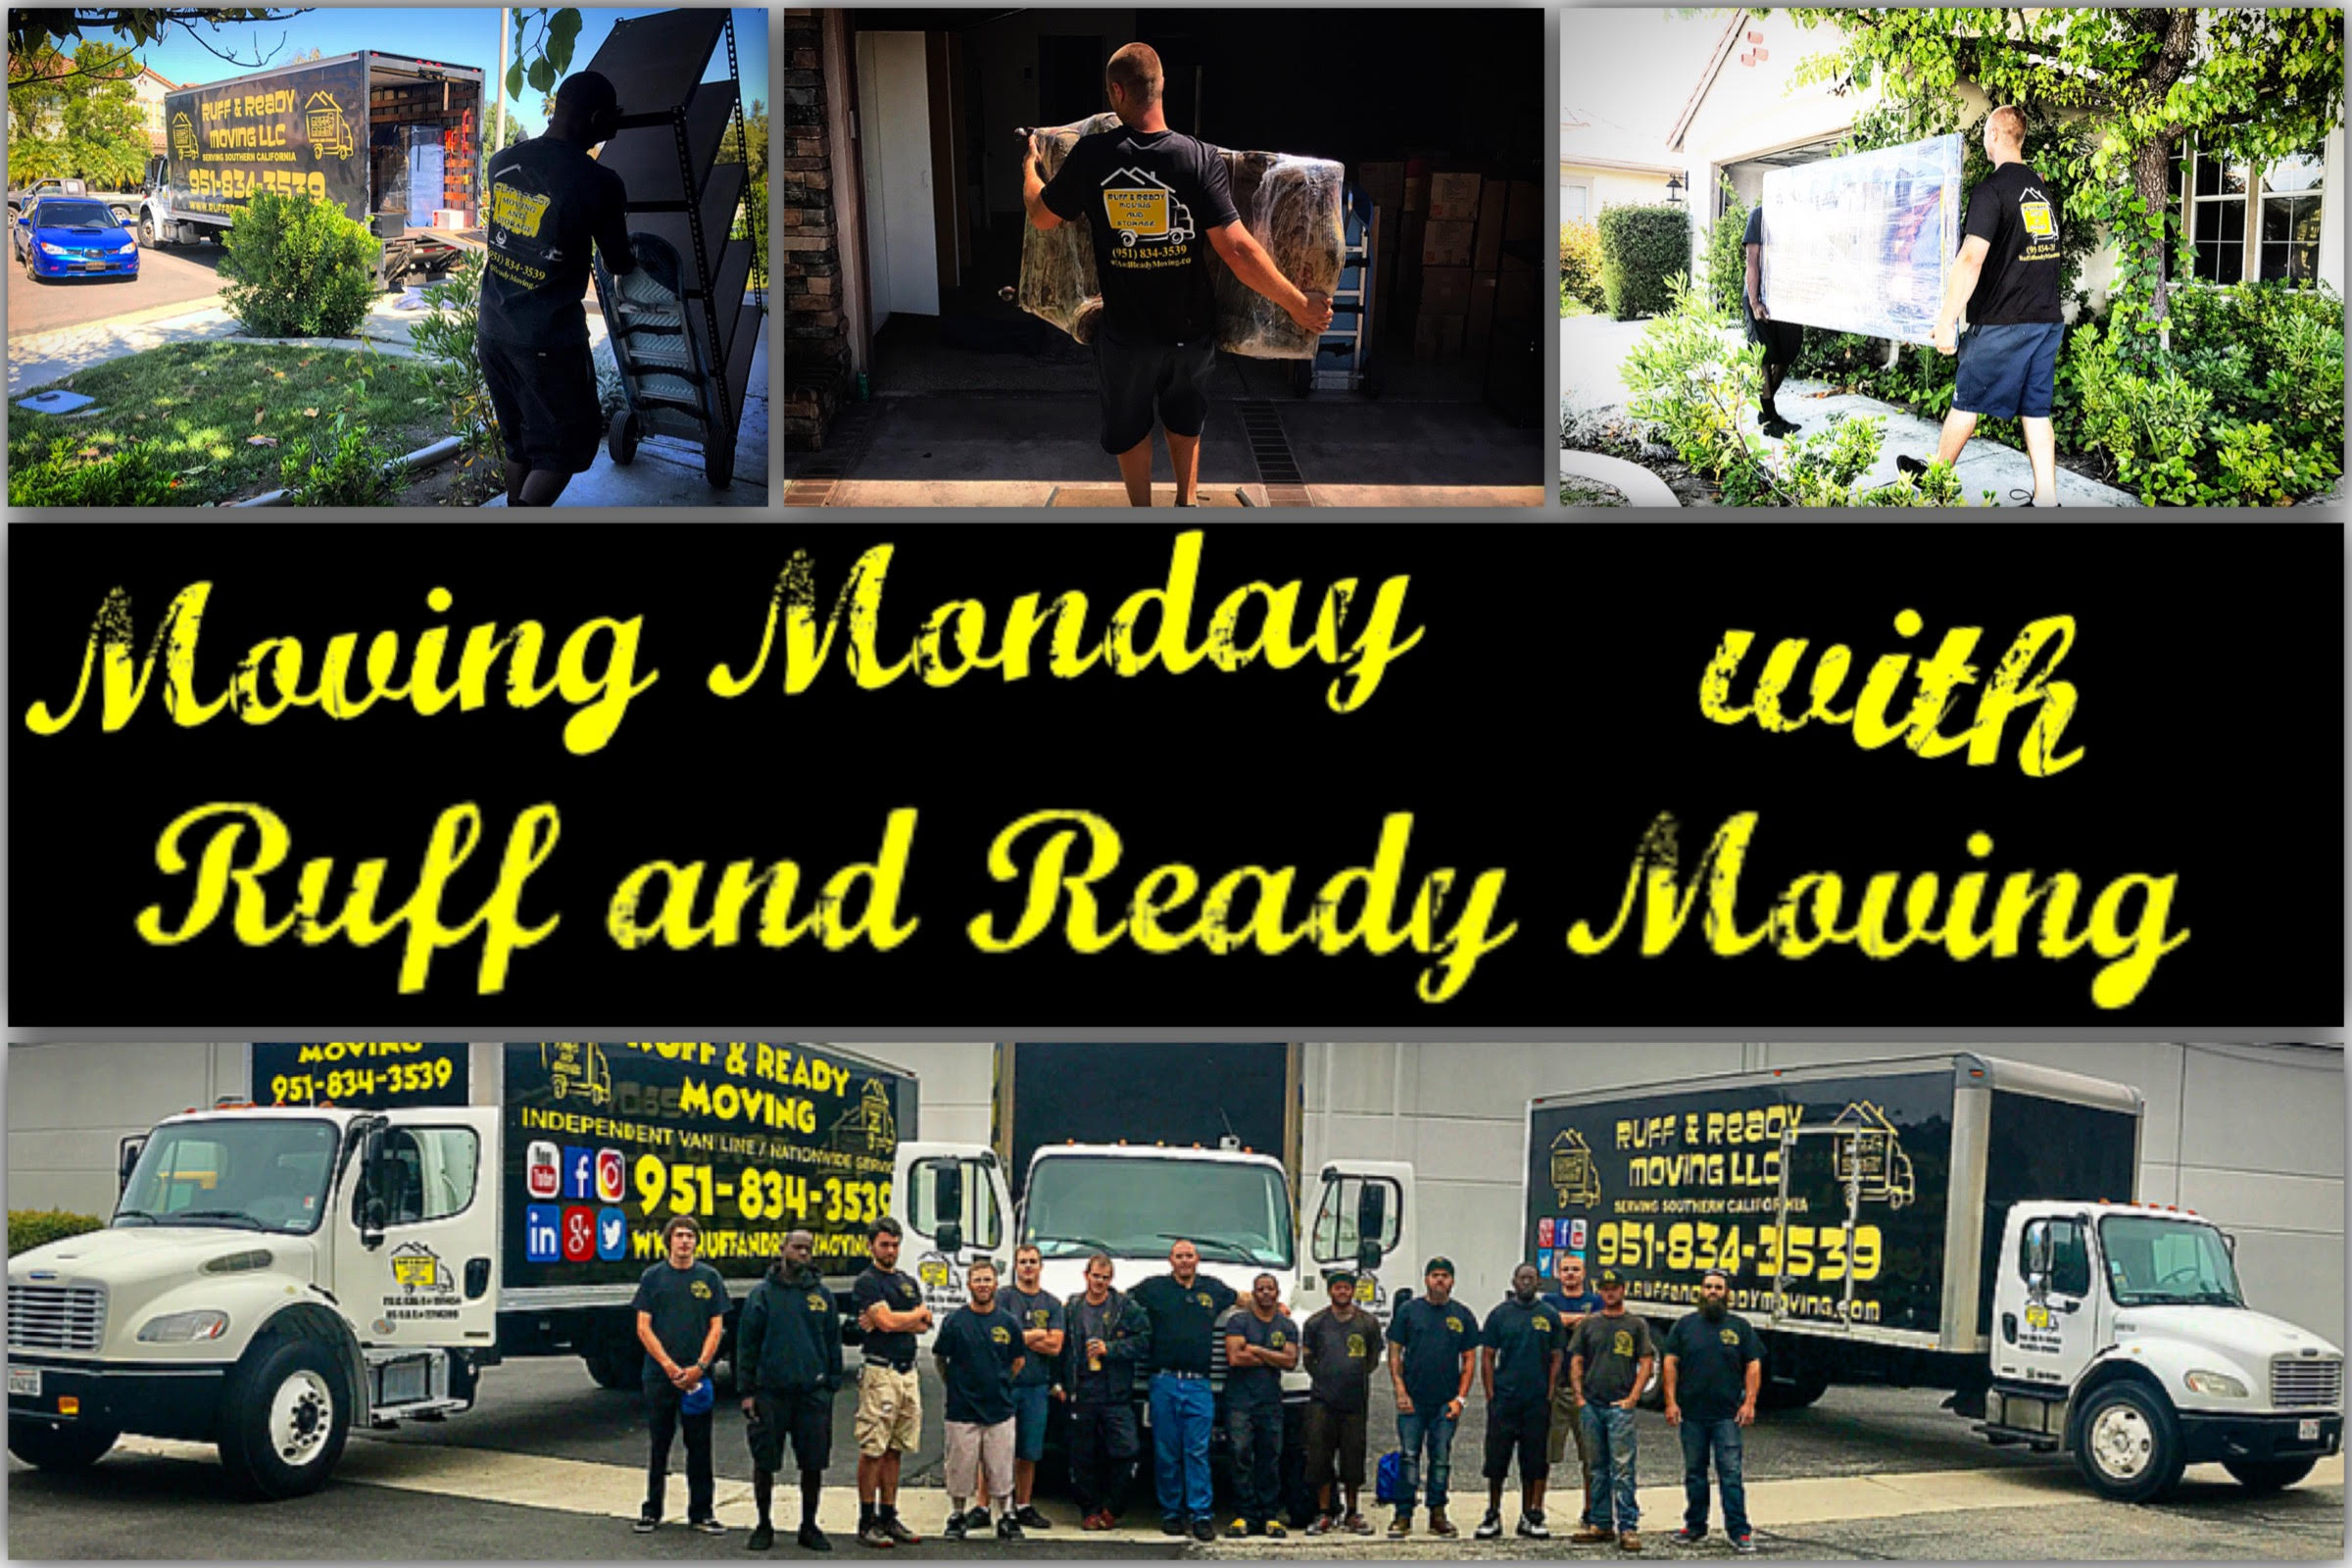 Ruff And Ready Moving 43169 Vía Dos Picos Temecula Ca Furniture Movers Mapquest